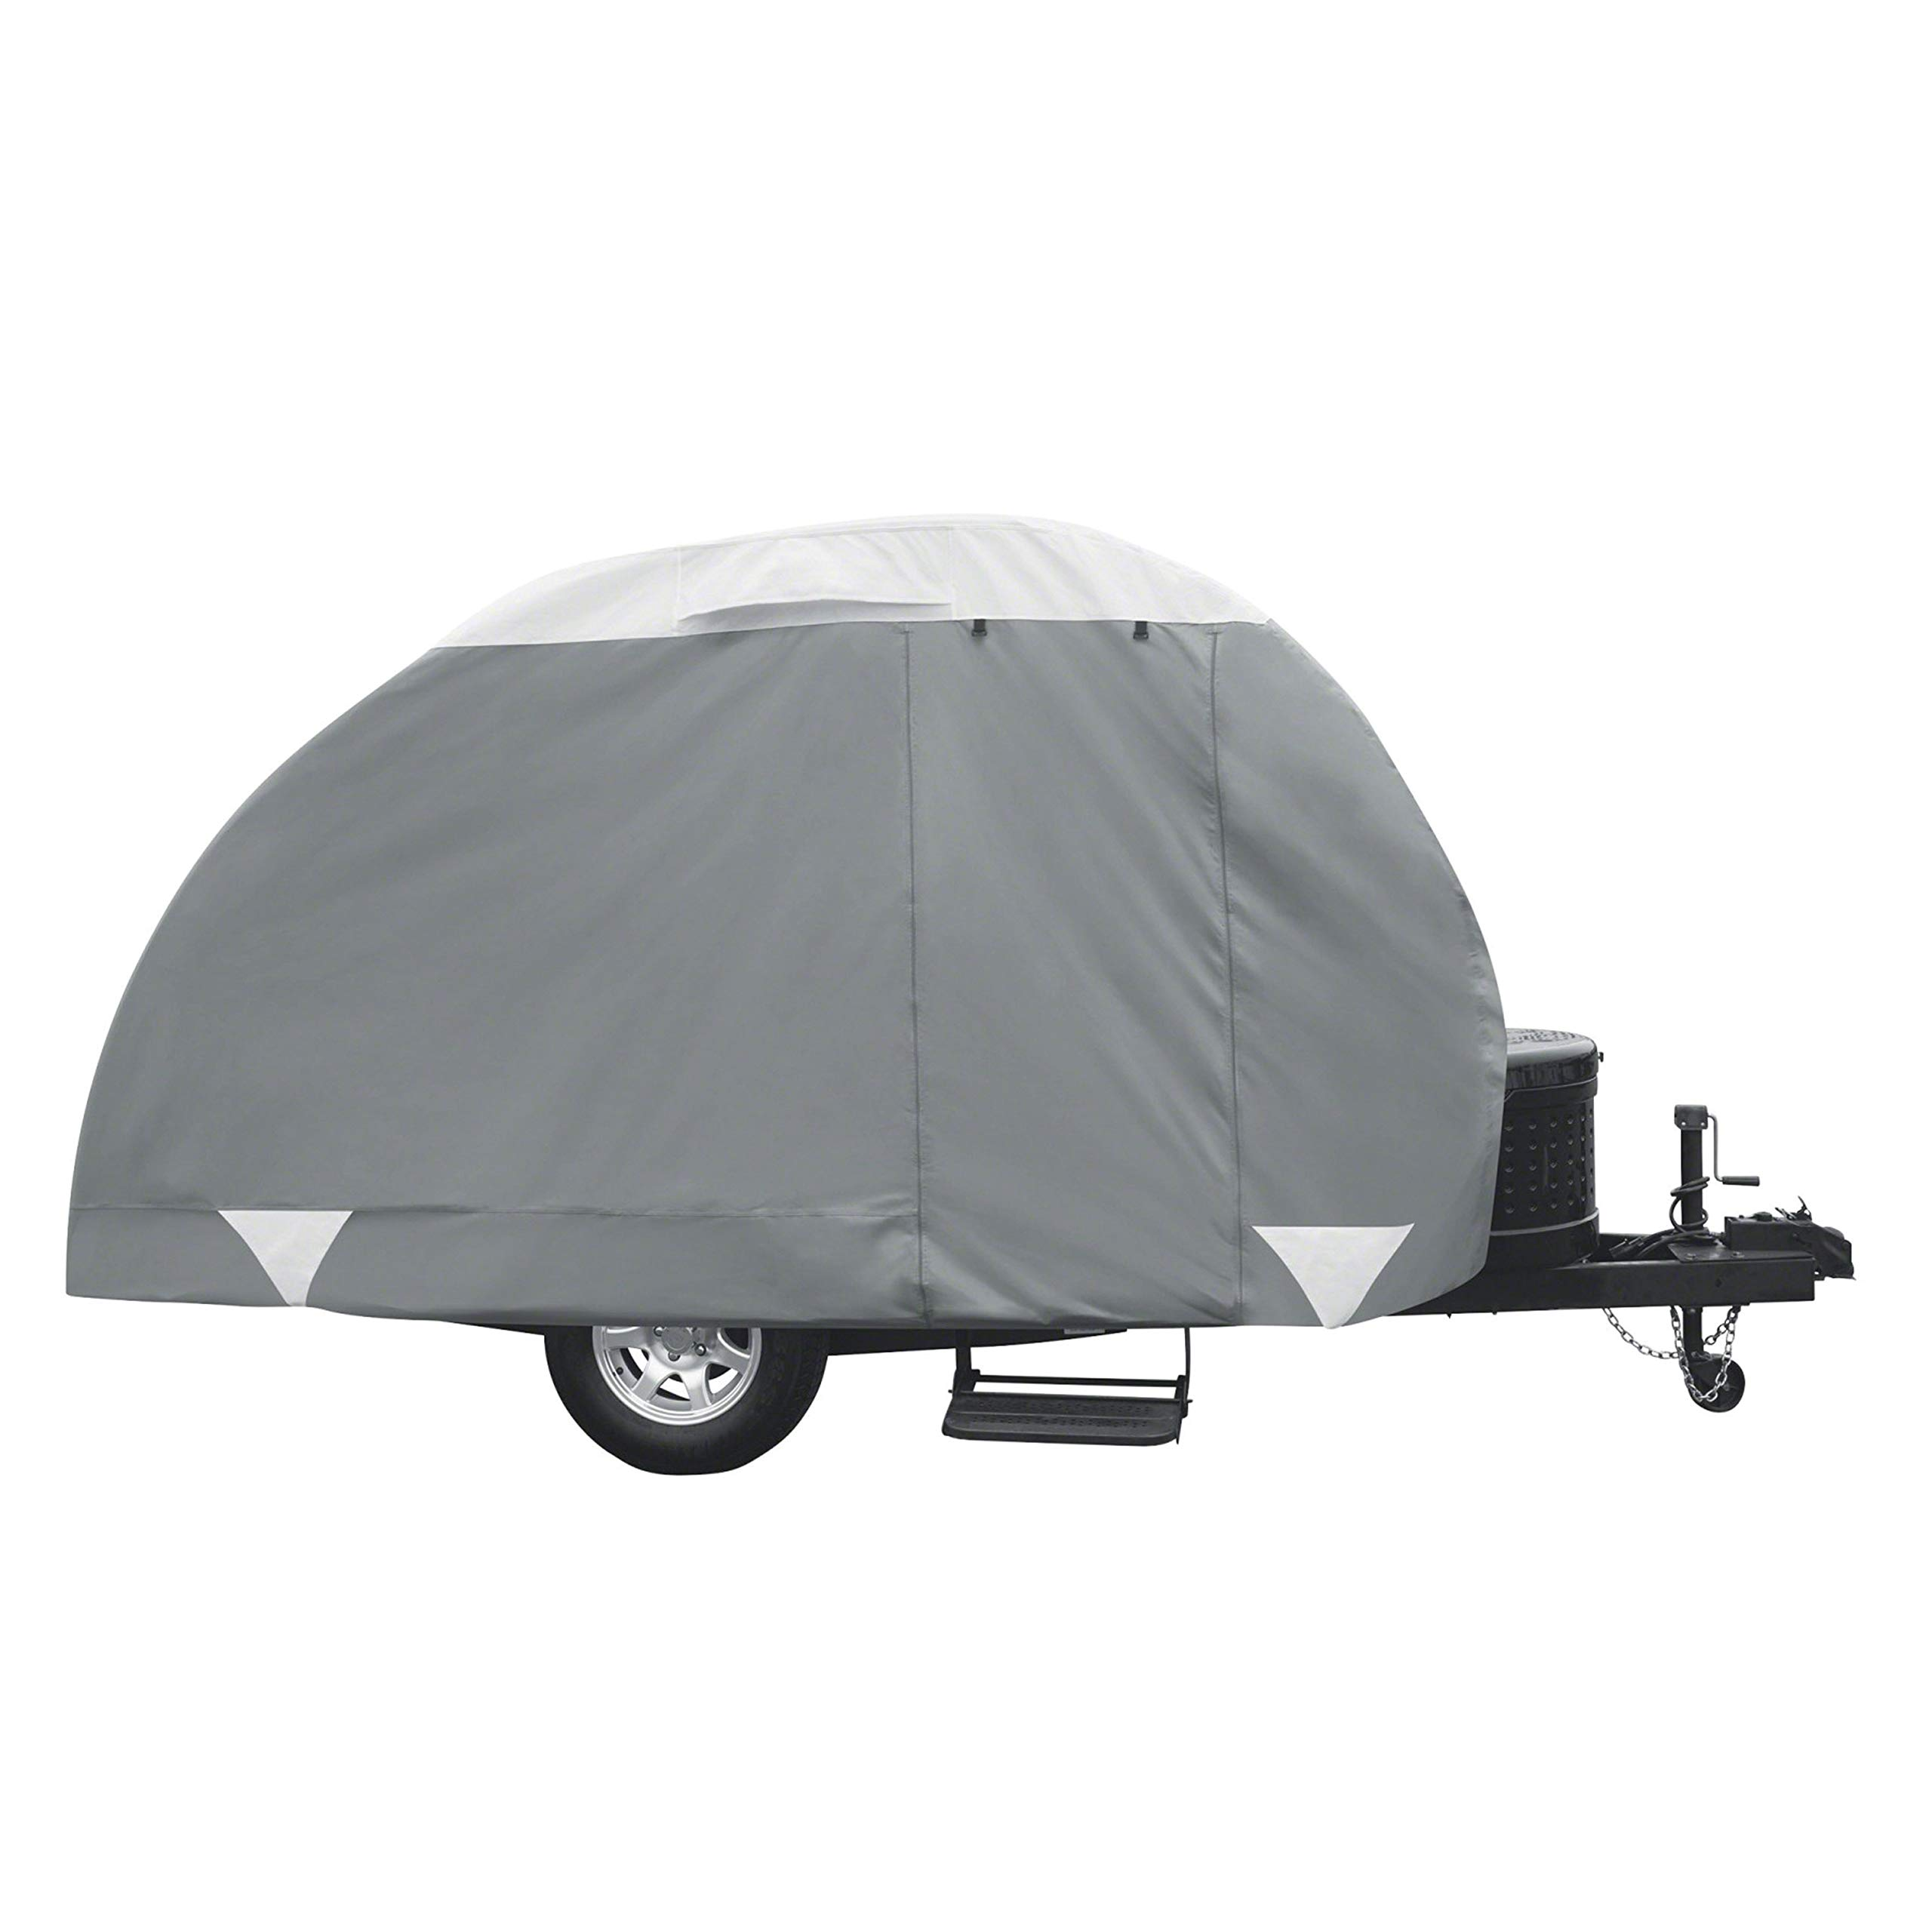 Classic Accessories PolyPro 3 Teardrop Camping Trailer Cover, Up To 132'' Long by Classic Accessories